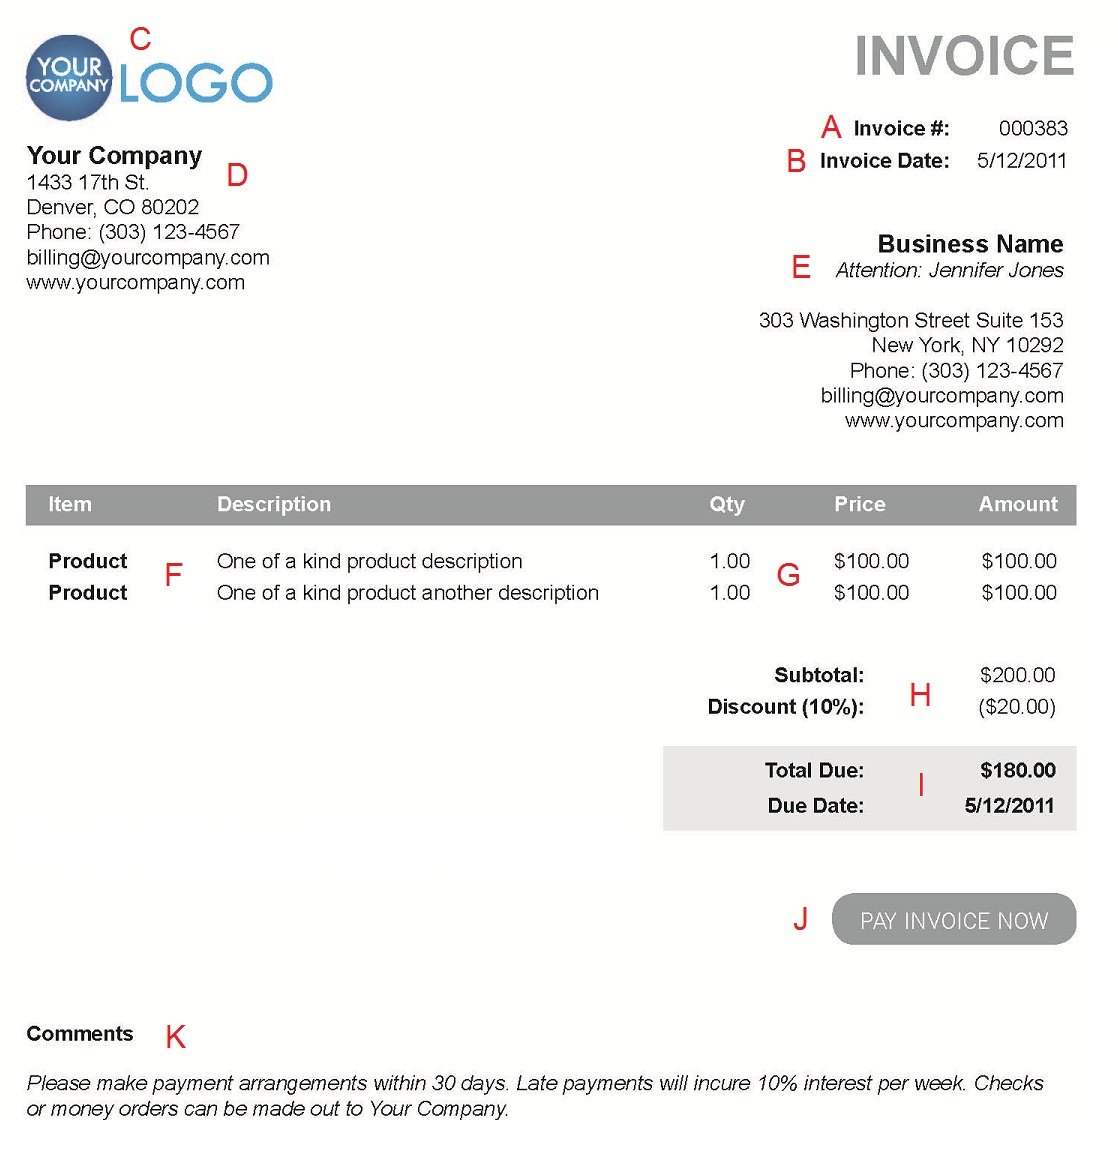 Coachoutletonlineplusus  Unusual The  Different Sections Of An Electronic Payment Invoice With Marvelous A  With Agreeable Printable Invoice Also Pro Forma Invoice In Addition Invoice Template Free And Invoice Sample As Well As How To Write An Invoice Additionally What Is Invoice From Paysimplecom With Coachoutletonlineplusus  Marvelous The  Different Sections Of An Electronic Payment Invoice With Agreeable A  And Unusual Printable Invoice Also Pro Forma Invoice In Addition Invoice Template Free From Paysimplecom